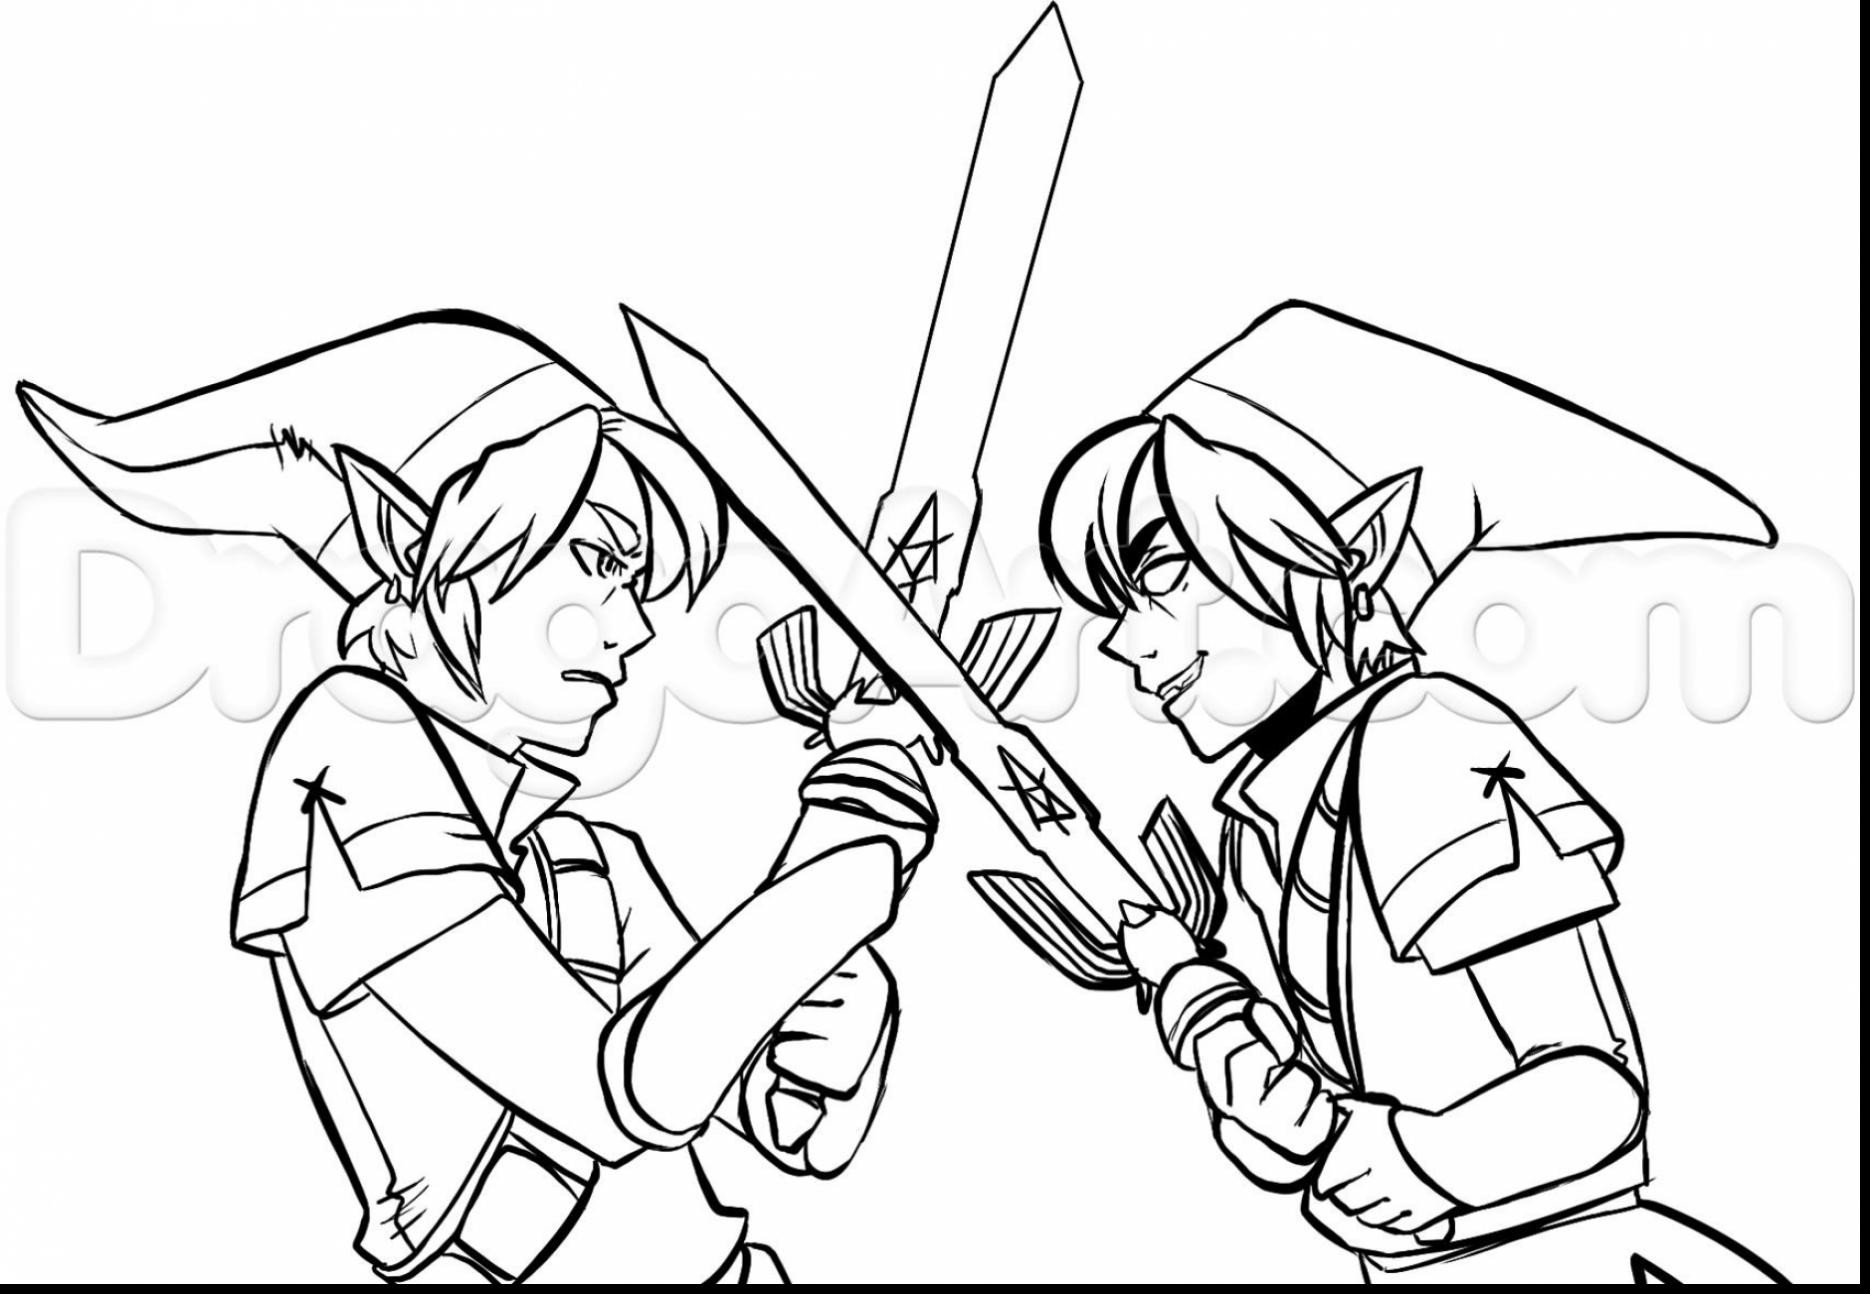 Legend Of Zelda Link Coloring Pages at GetDrawings | Free ...